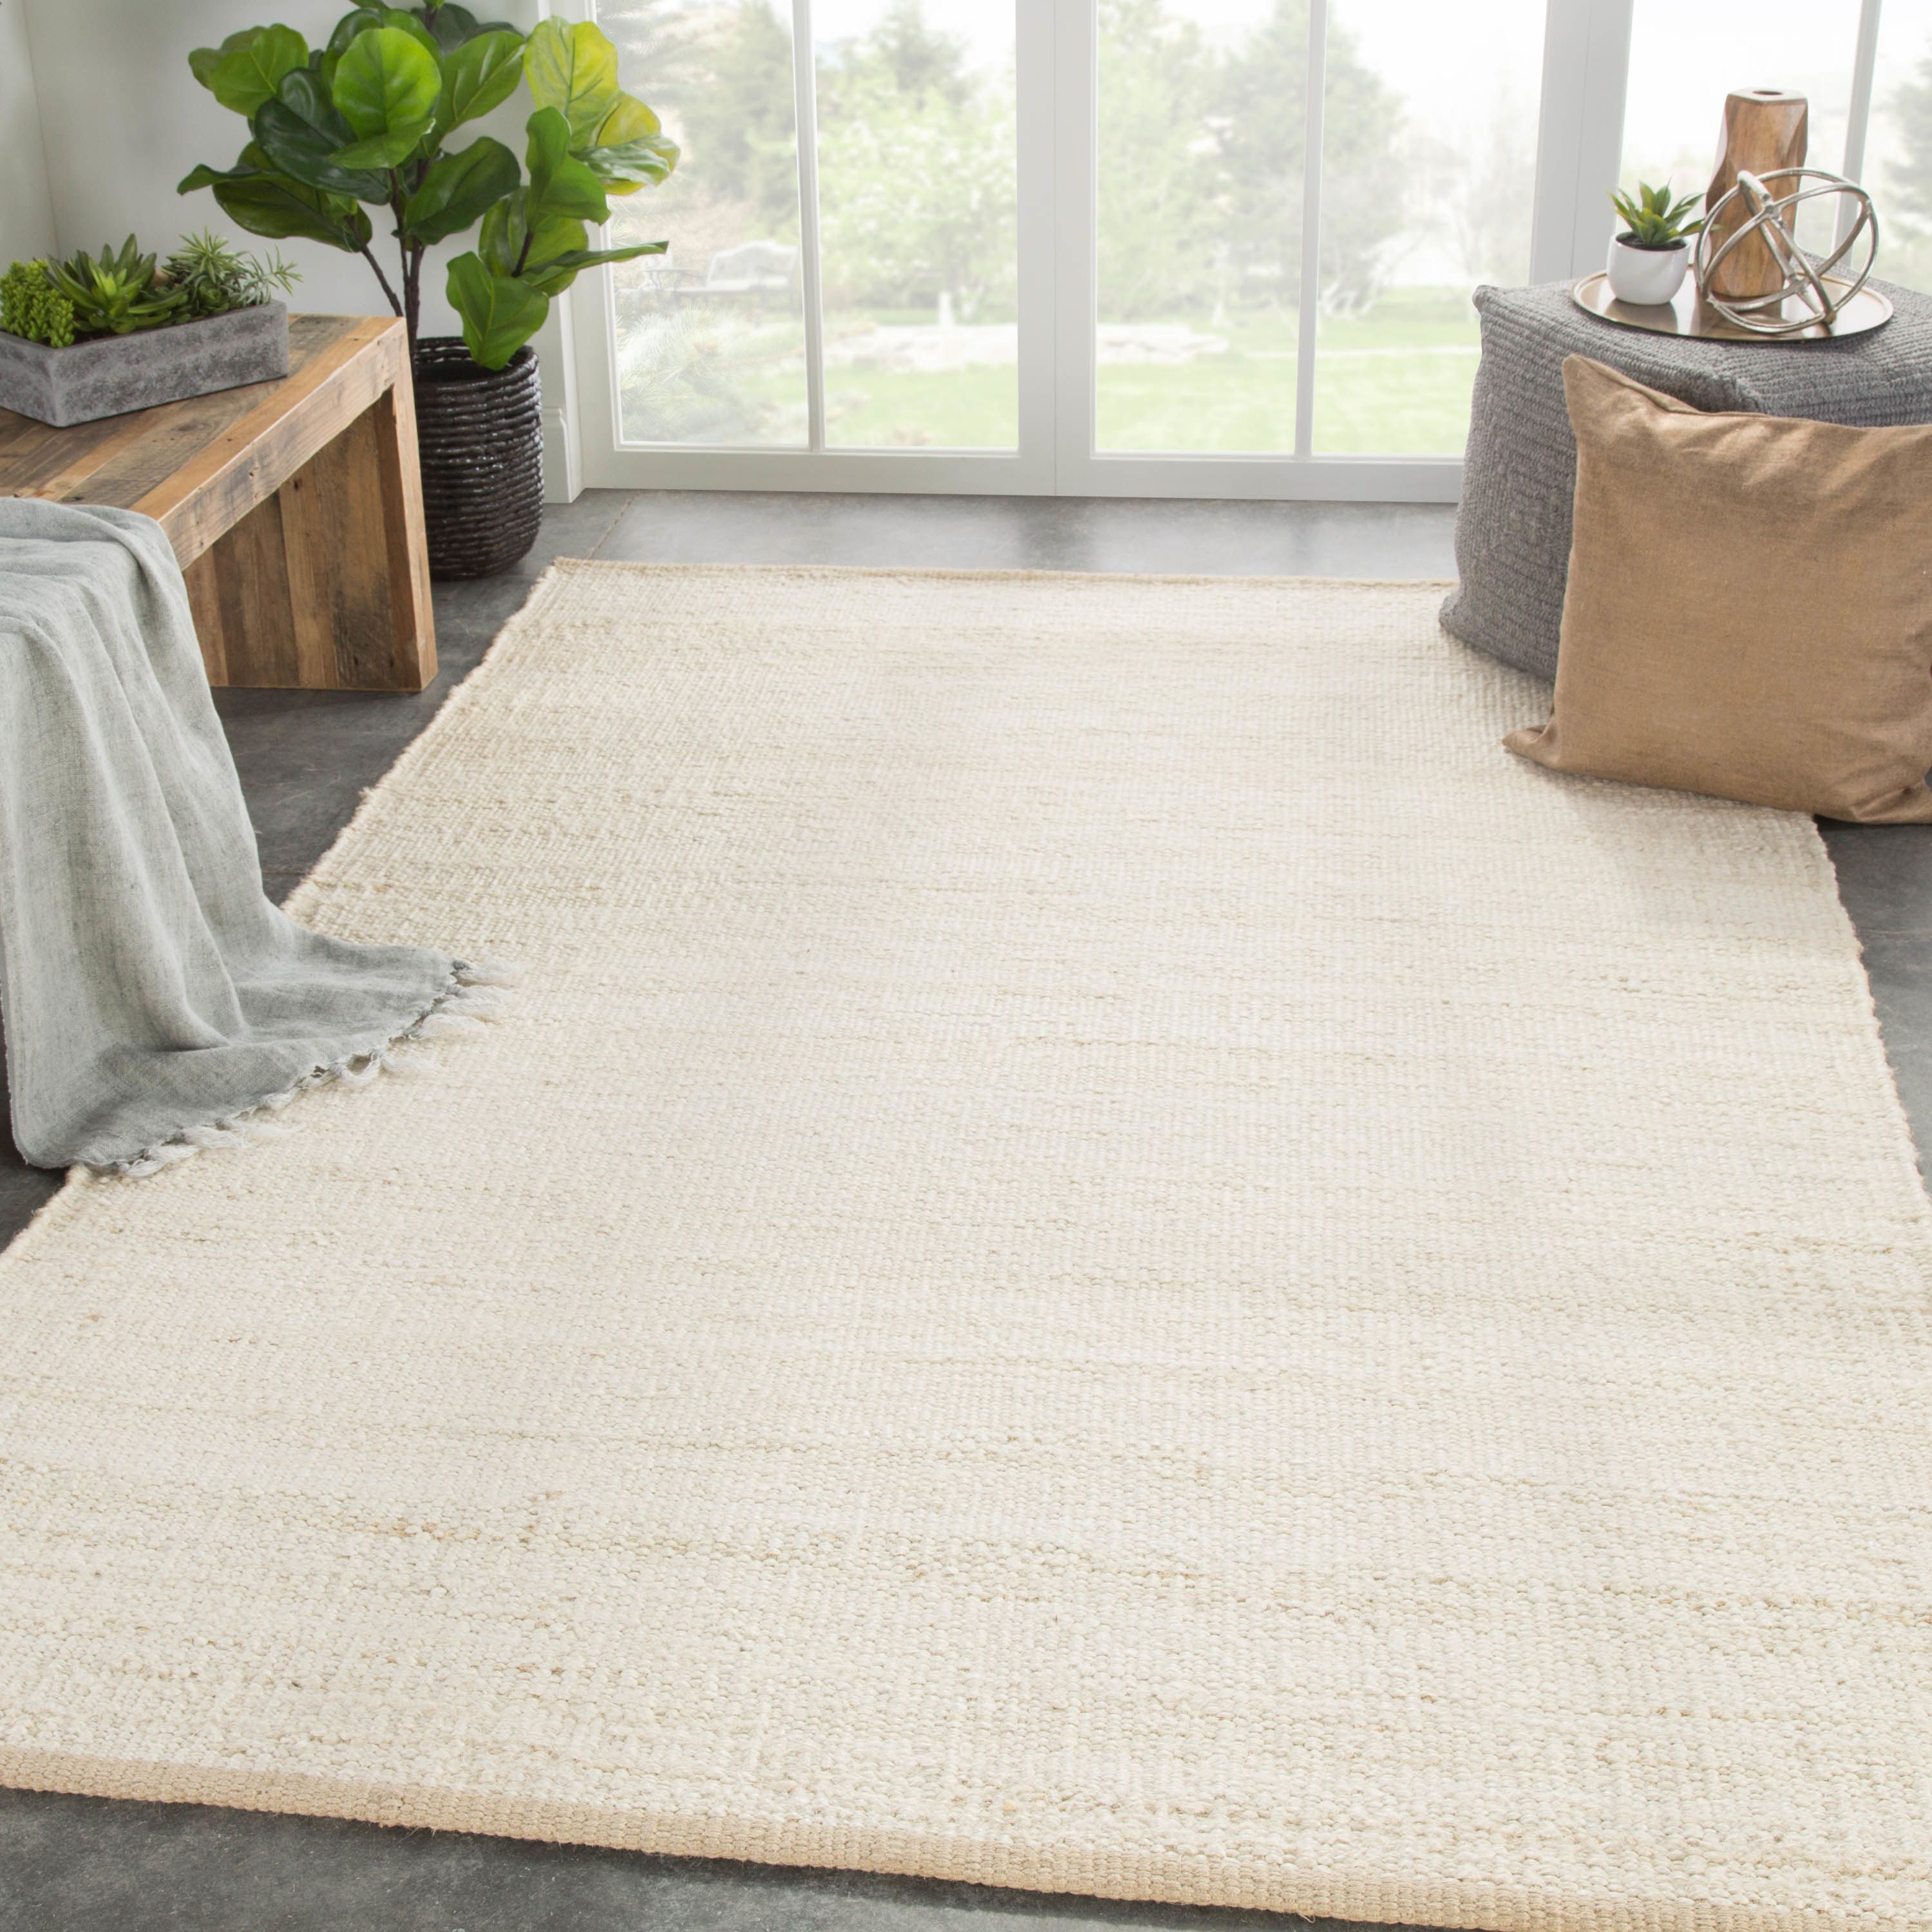 Anthro Color Cream Size 2 X 3 Cream Area Rug Area Rugs Rugs